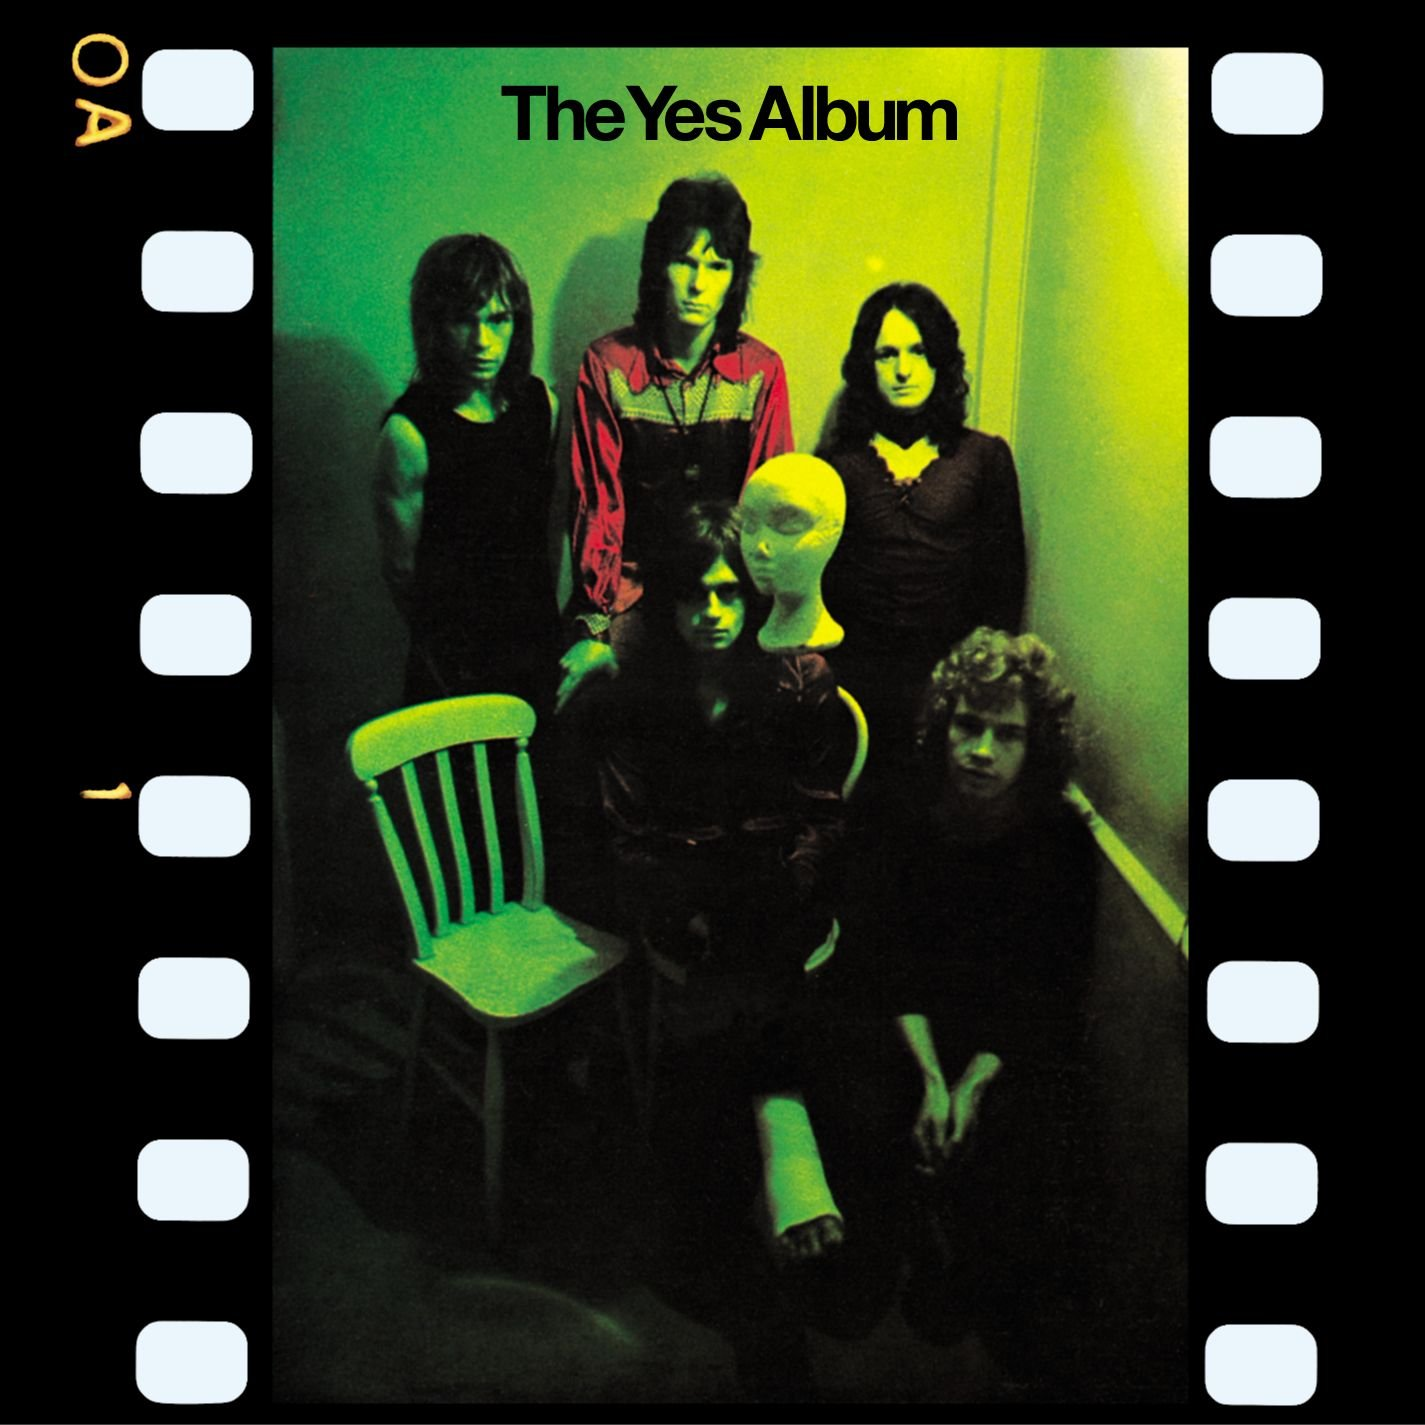 yes_the_yes_album_1971.jpg